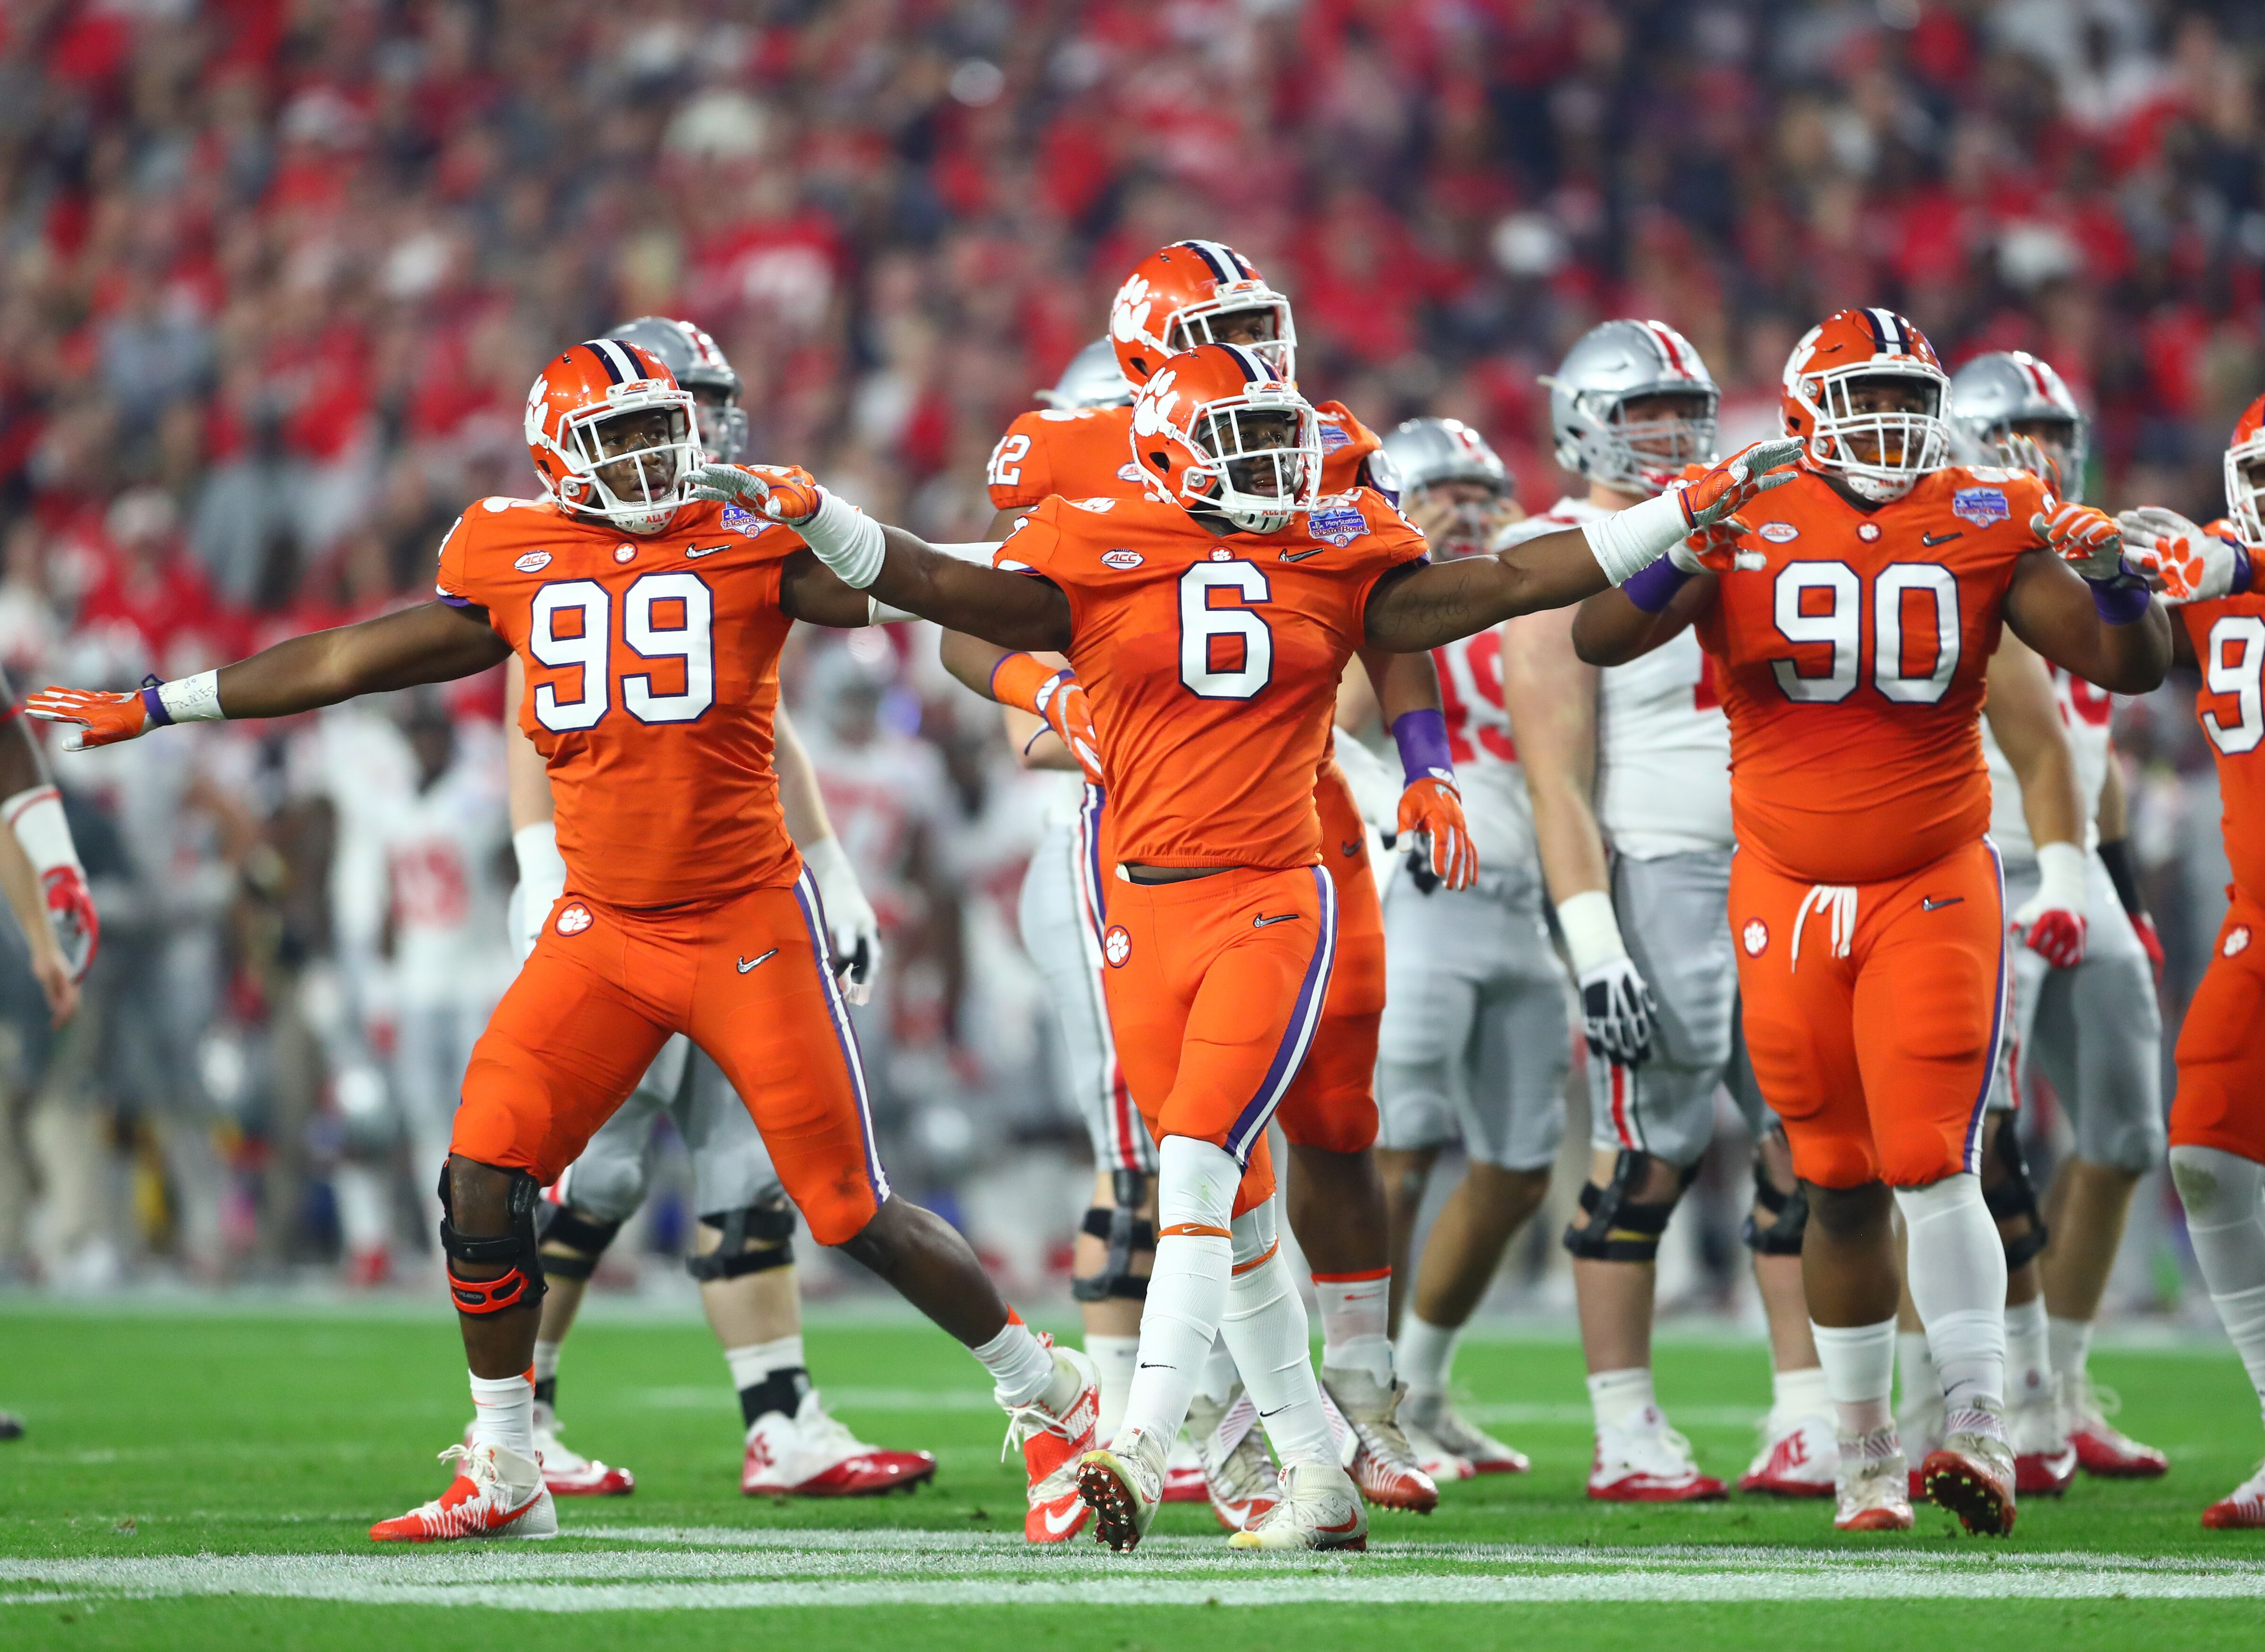 Clemson Tigers Defense Appears To Be Special Heading Into